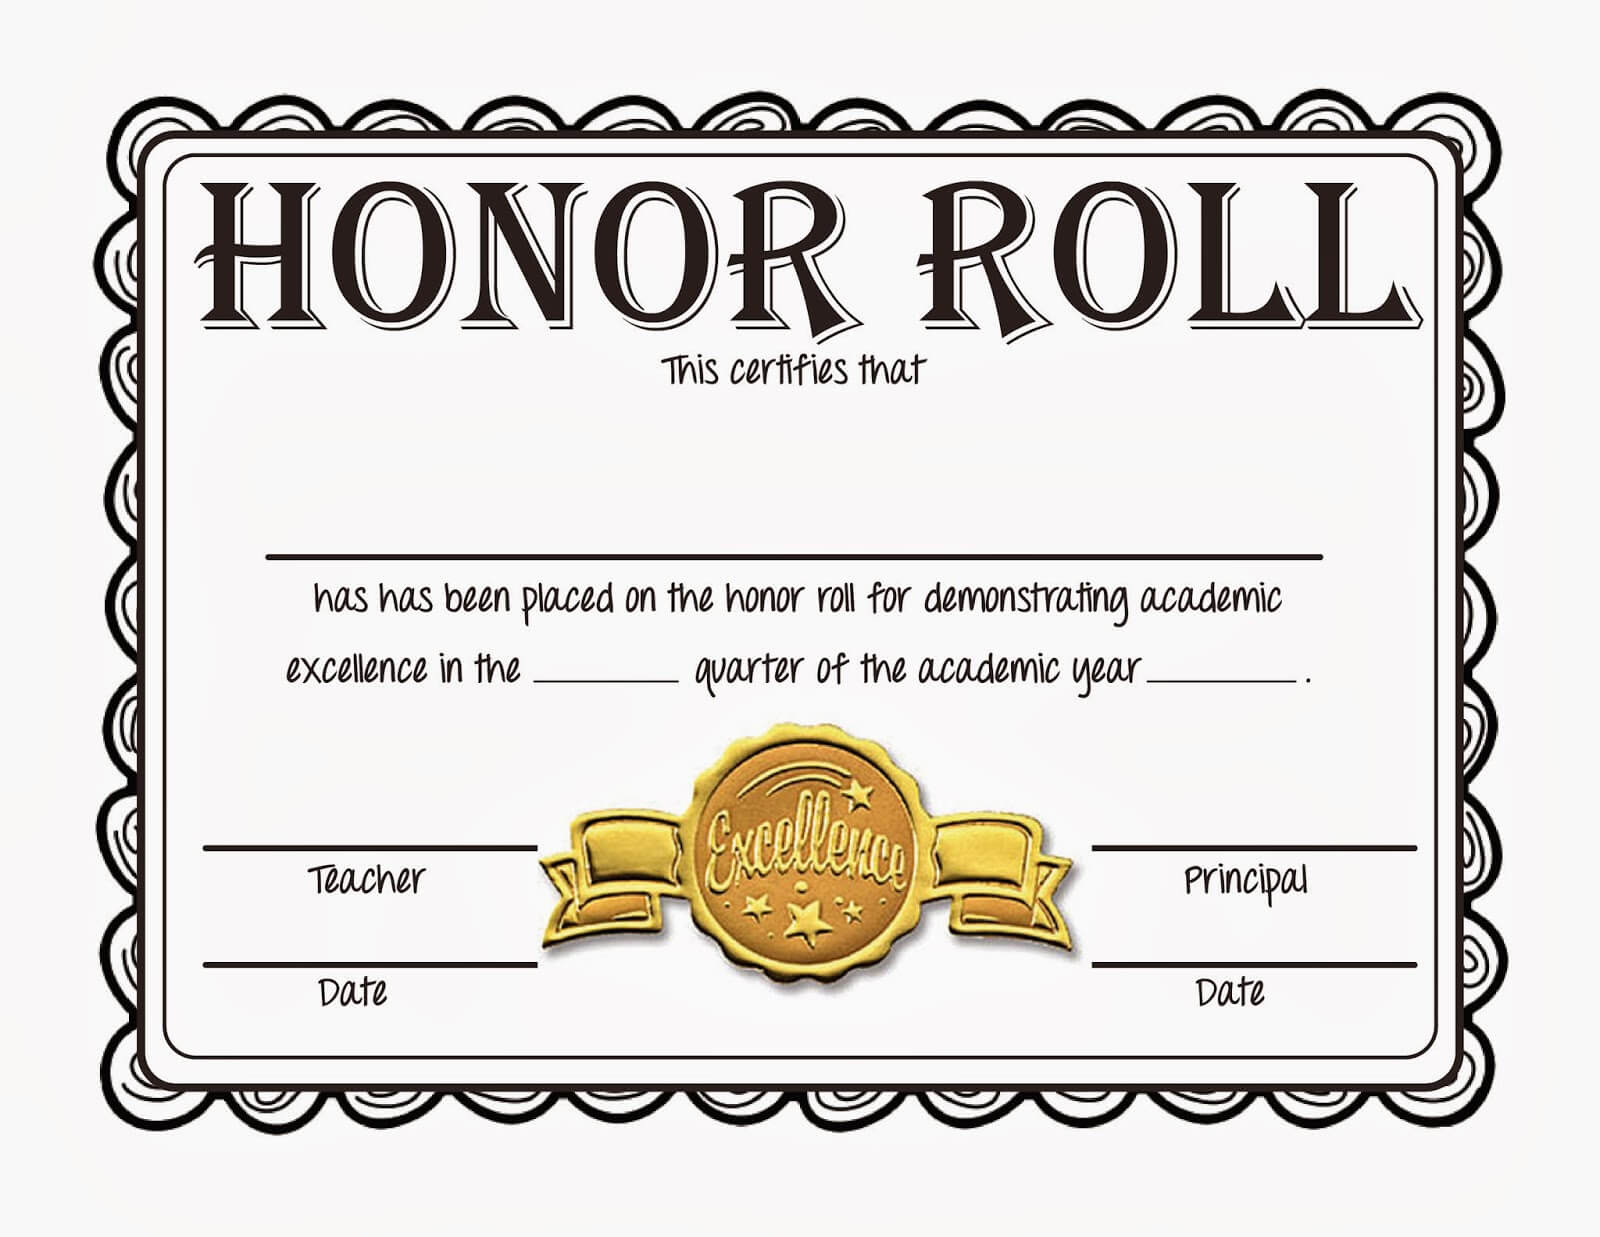 Honor Roll Certificates Template within Honor Roll Certificate Template